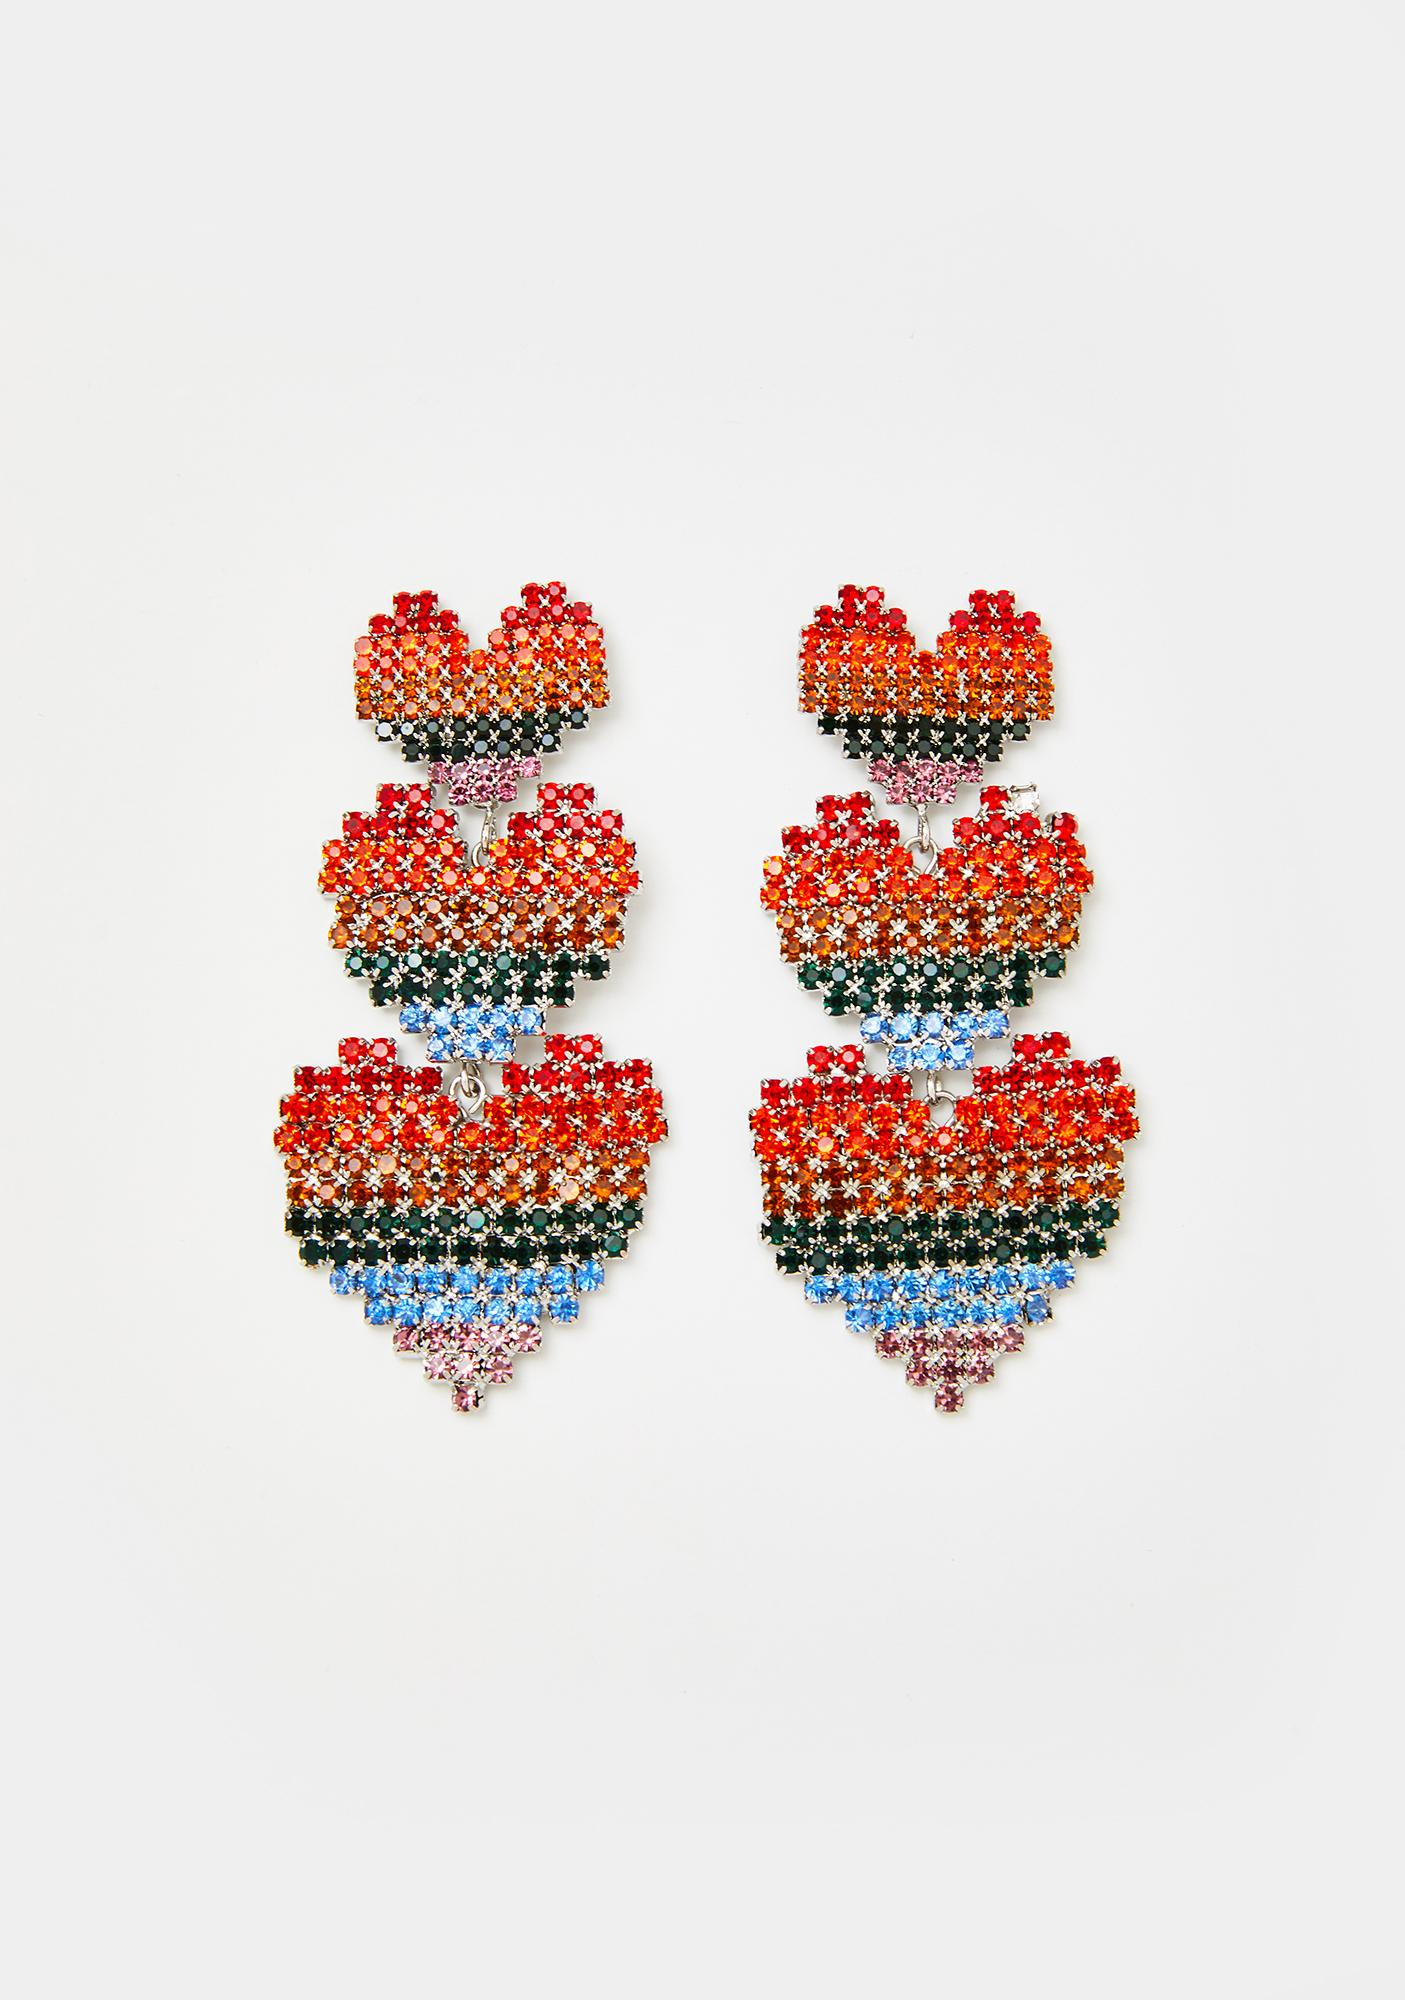 Prismatic Perfection Heart Earrings